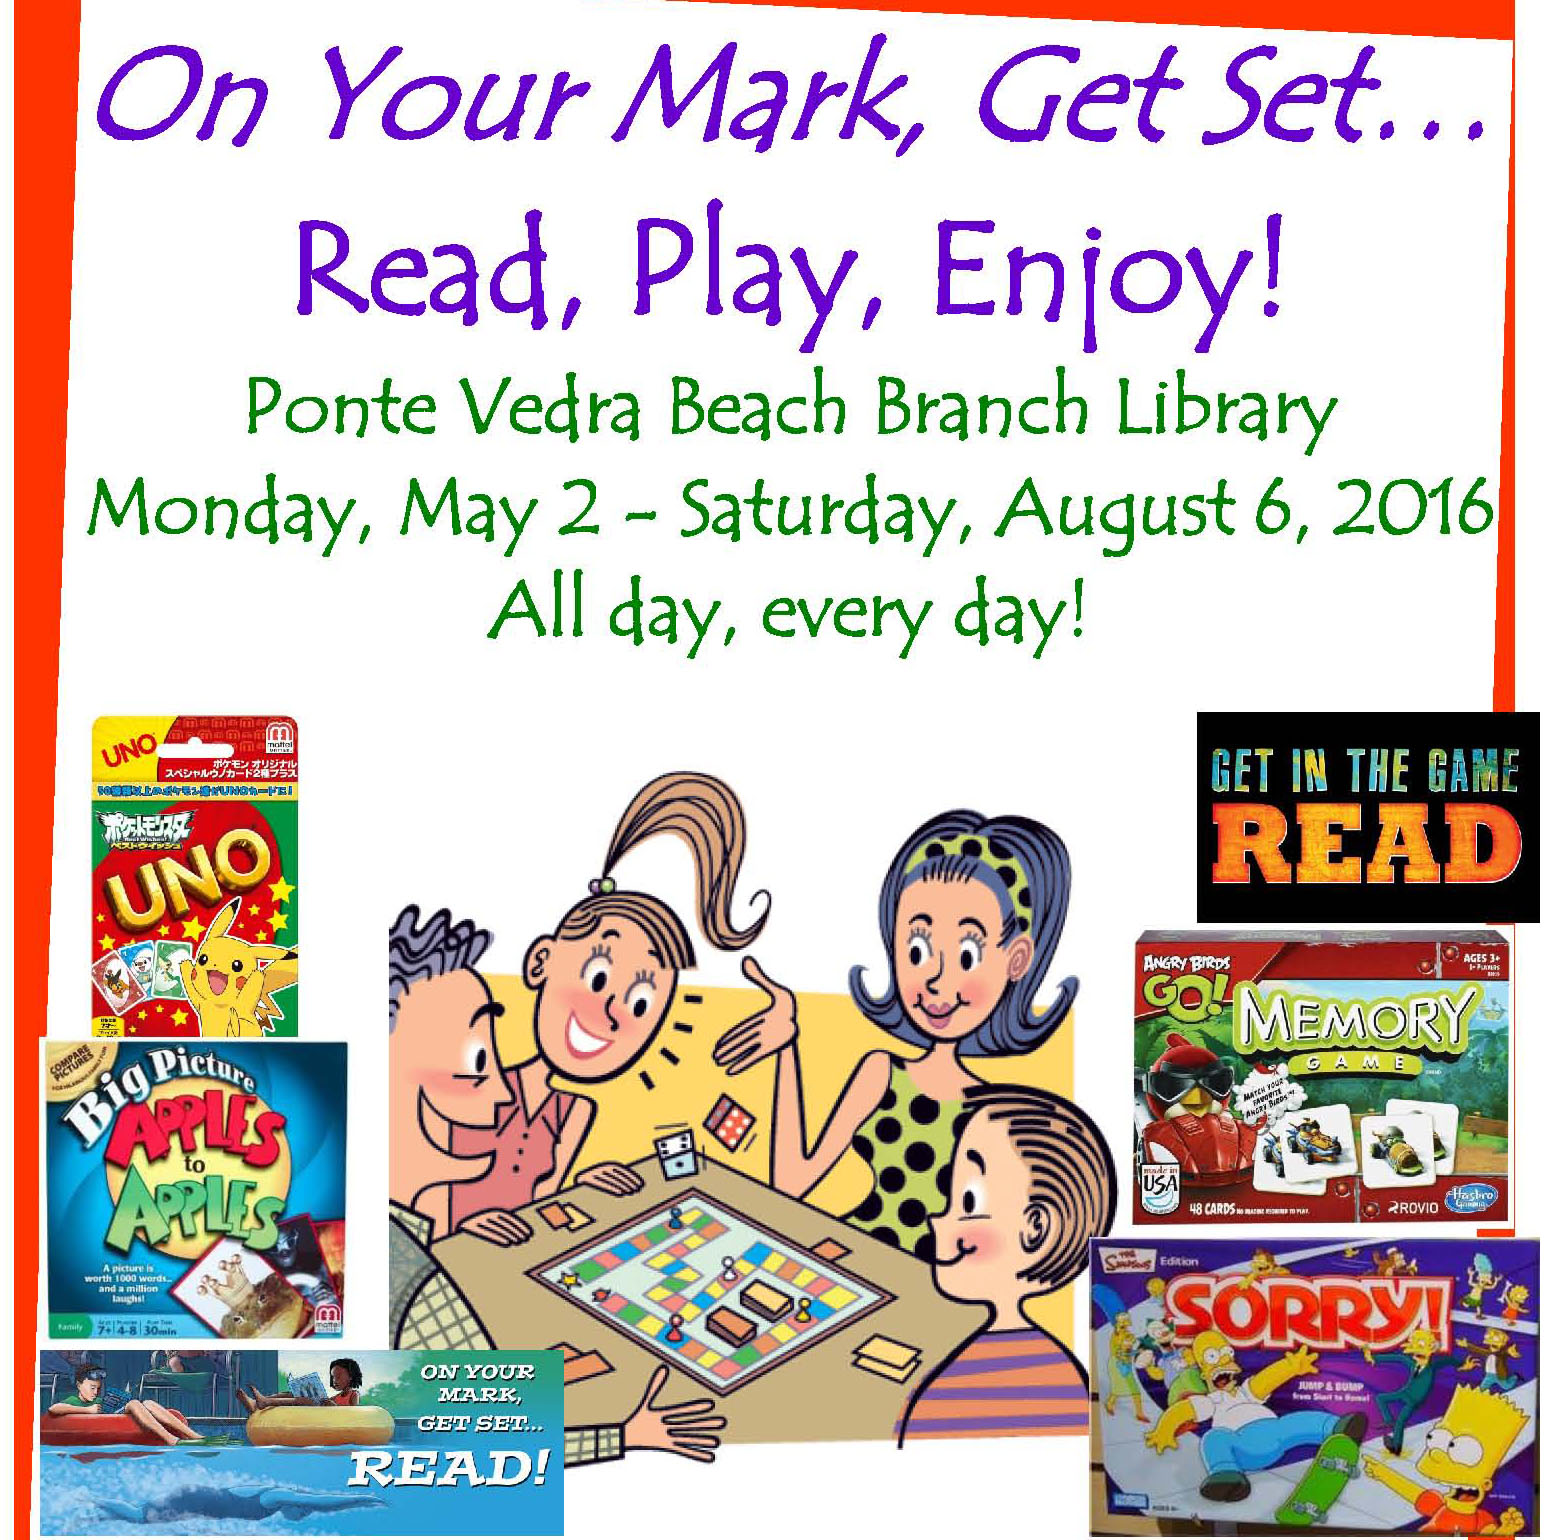 On Your Mark, Get Set...Read, Play, Enjoy! - Ponte Vedra Beach Branch Library